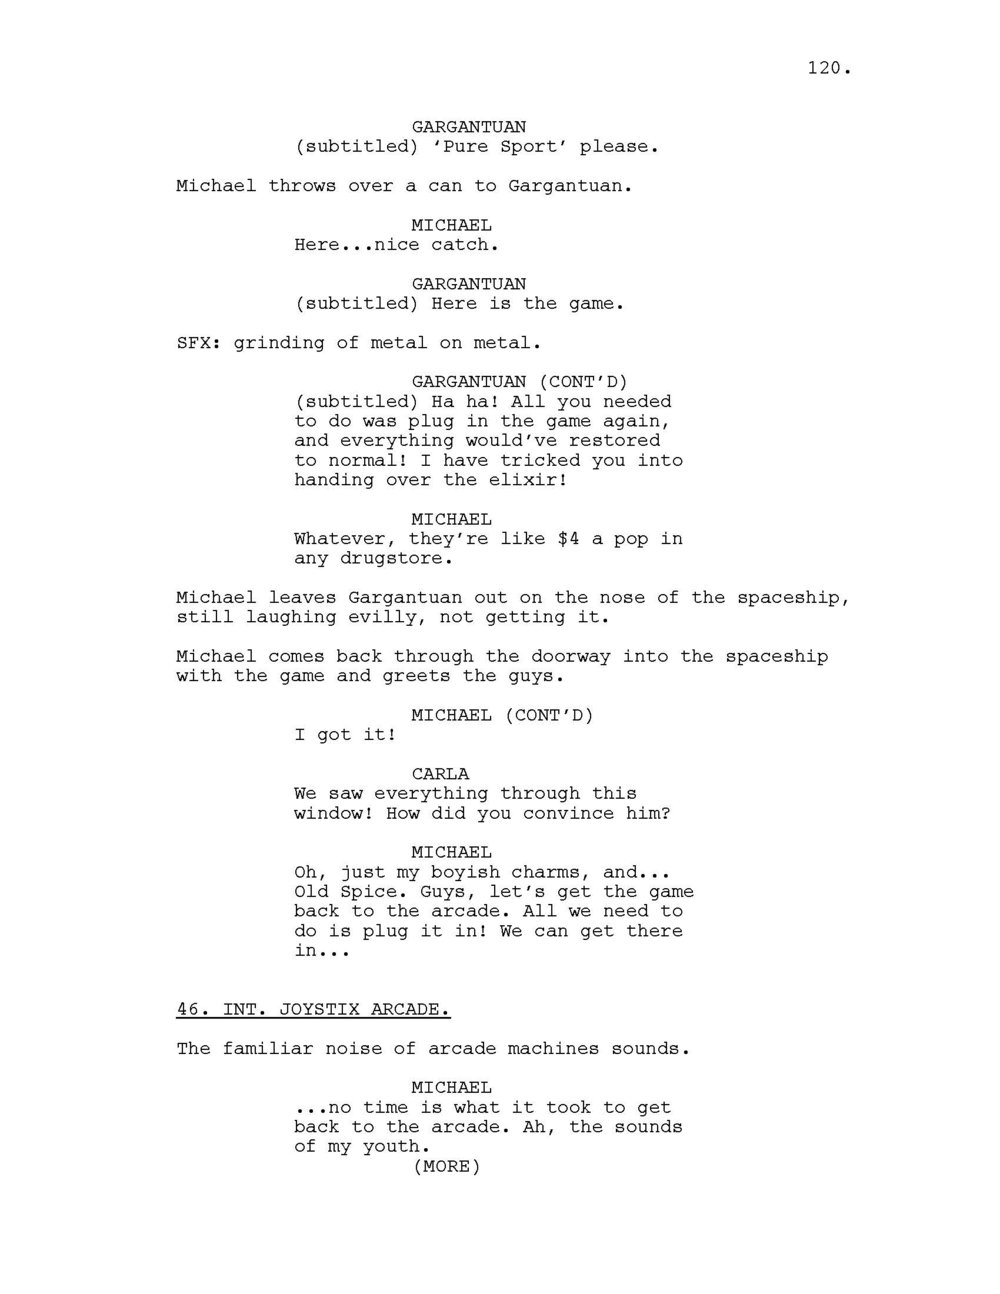 INVISIBLE WORLD SCRIPT_Page_121.jpg